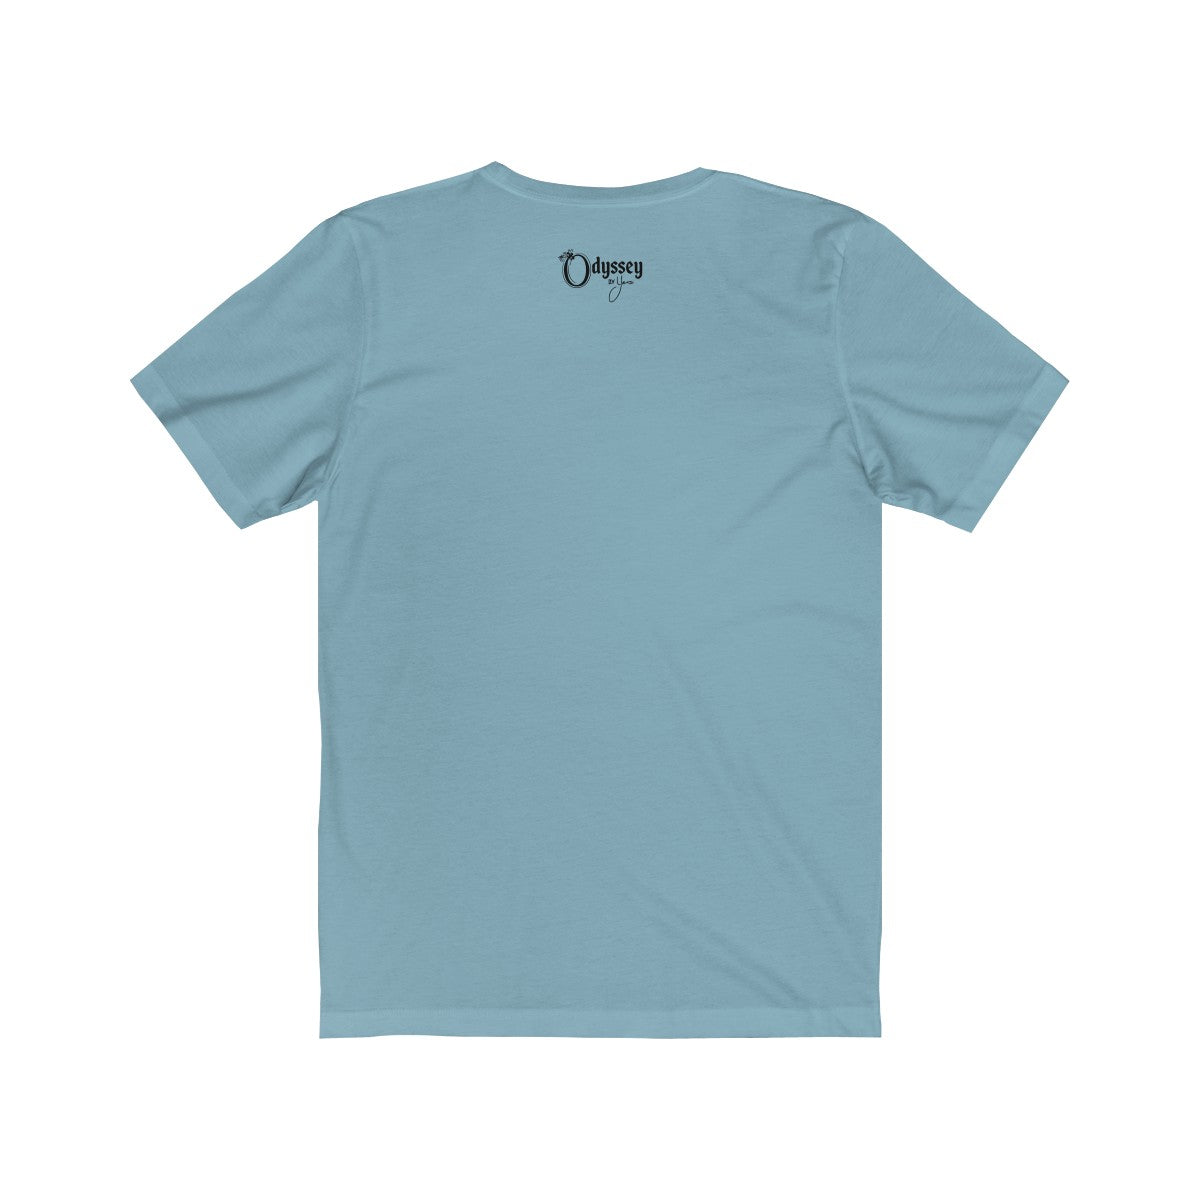 Odyssey Be Kind Men's T-shirt